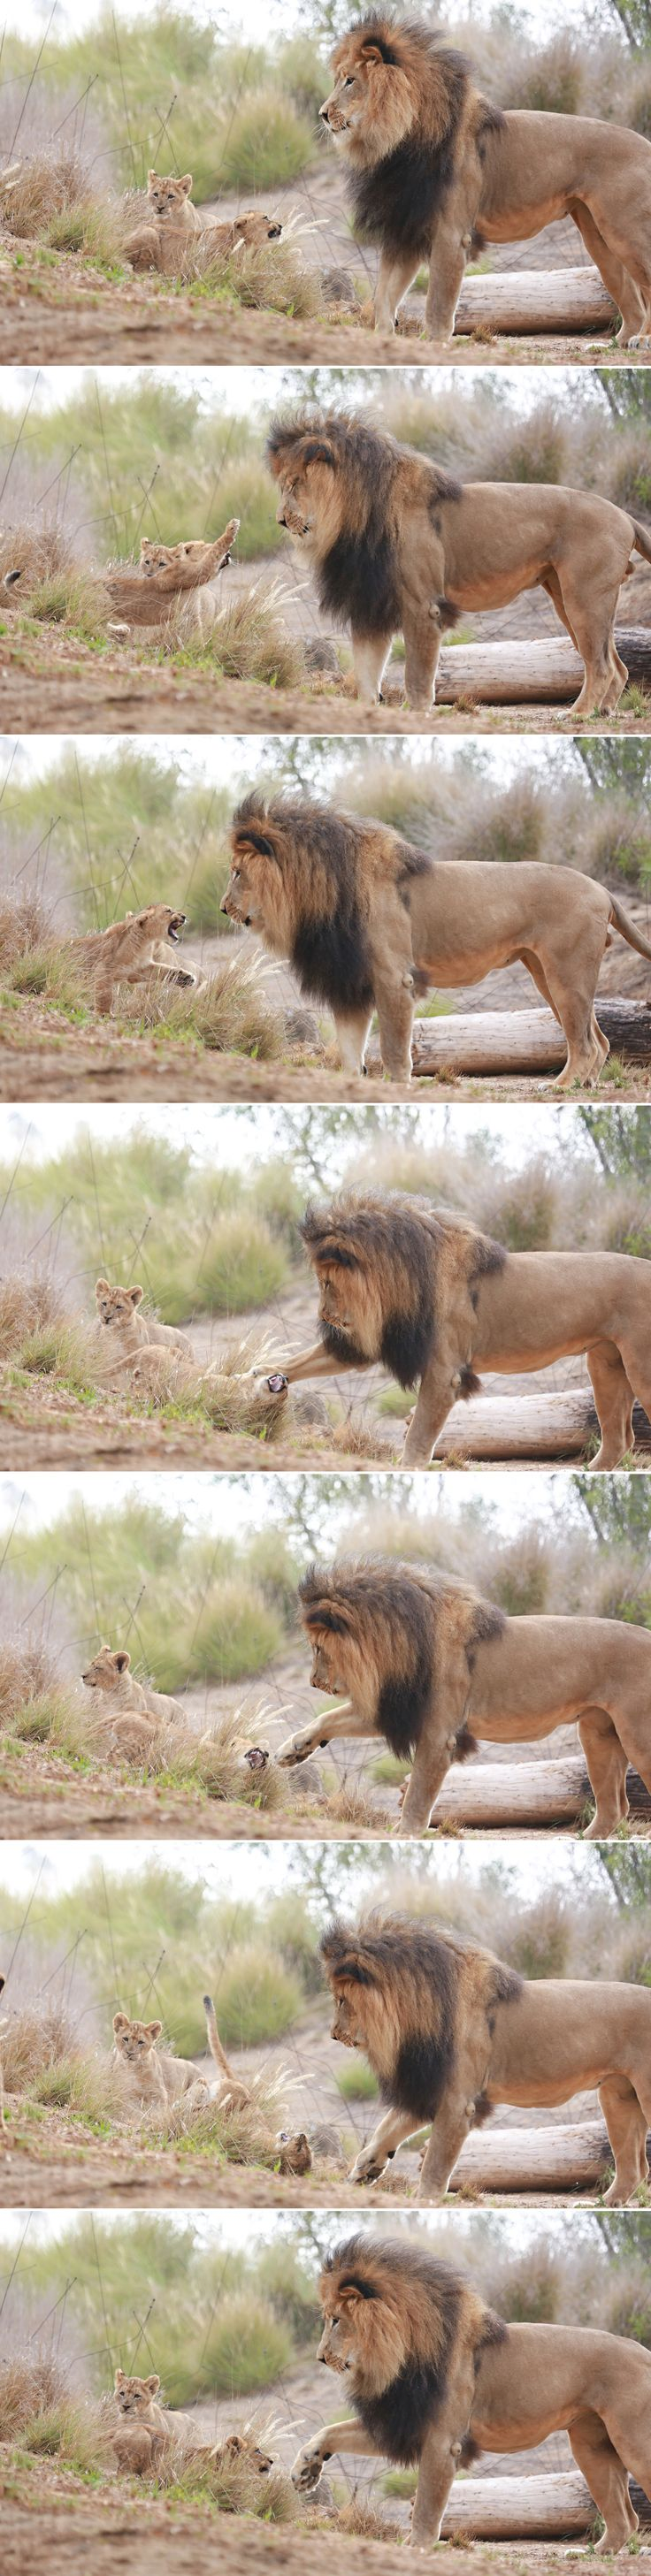 Lion Dad vs. Daughter. Izu's cubs are fearless. Photos by Angie Bell